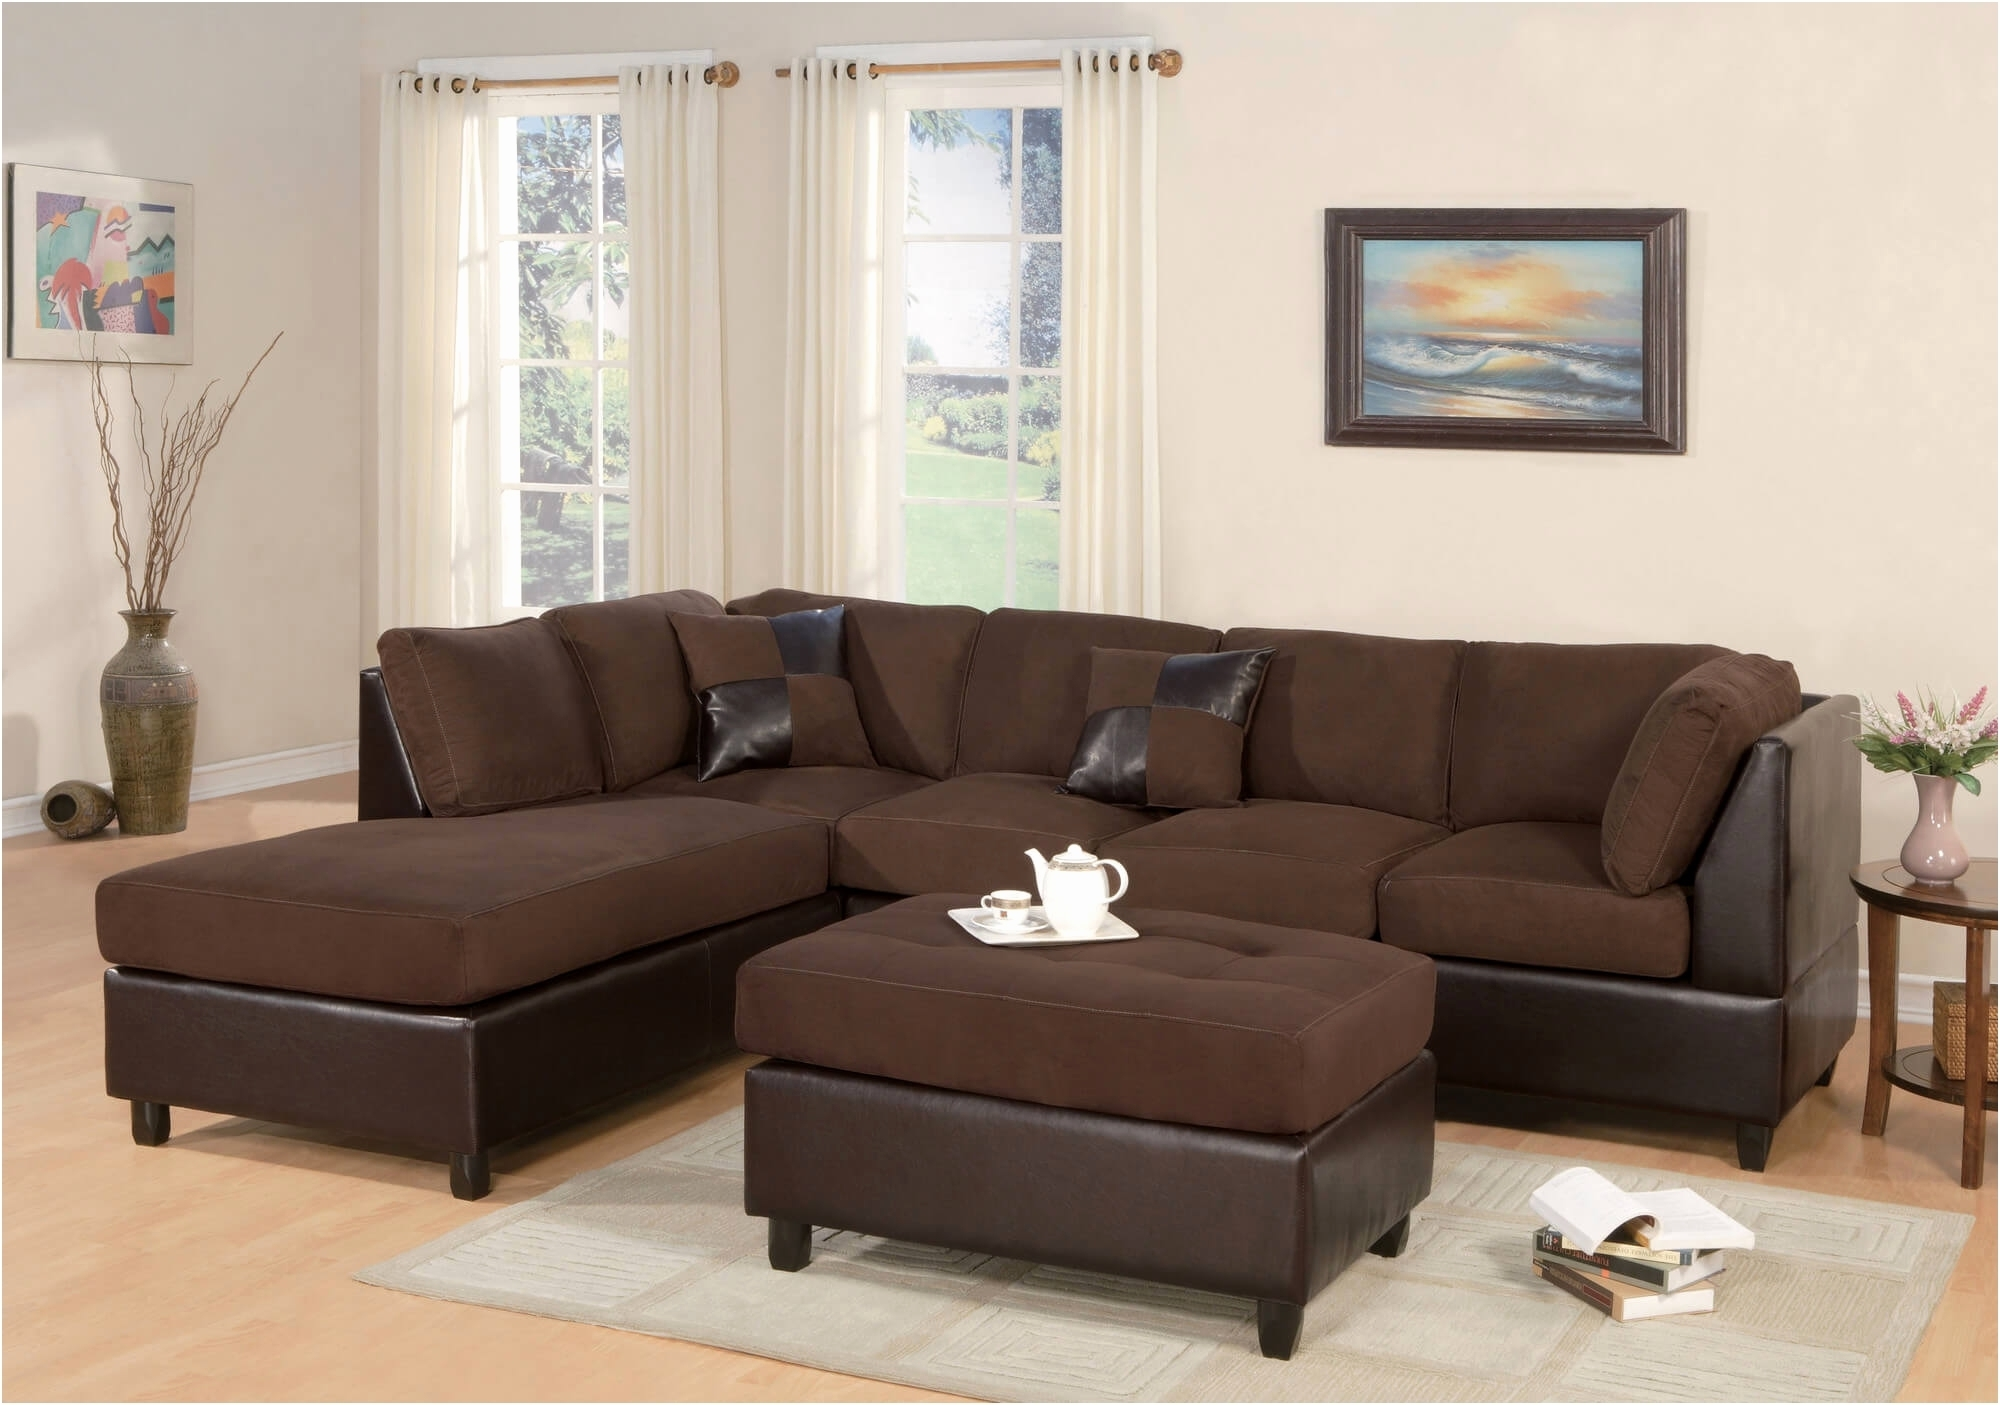 Sofa Regarding 2018 London Ontario Sectional Sofas (View 13 of 15)